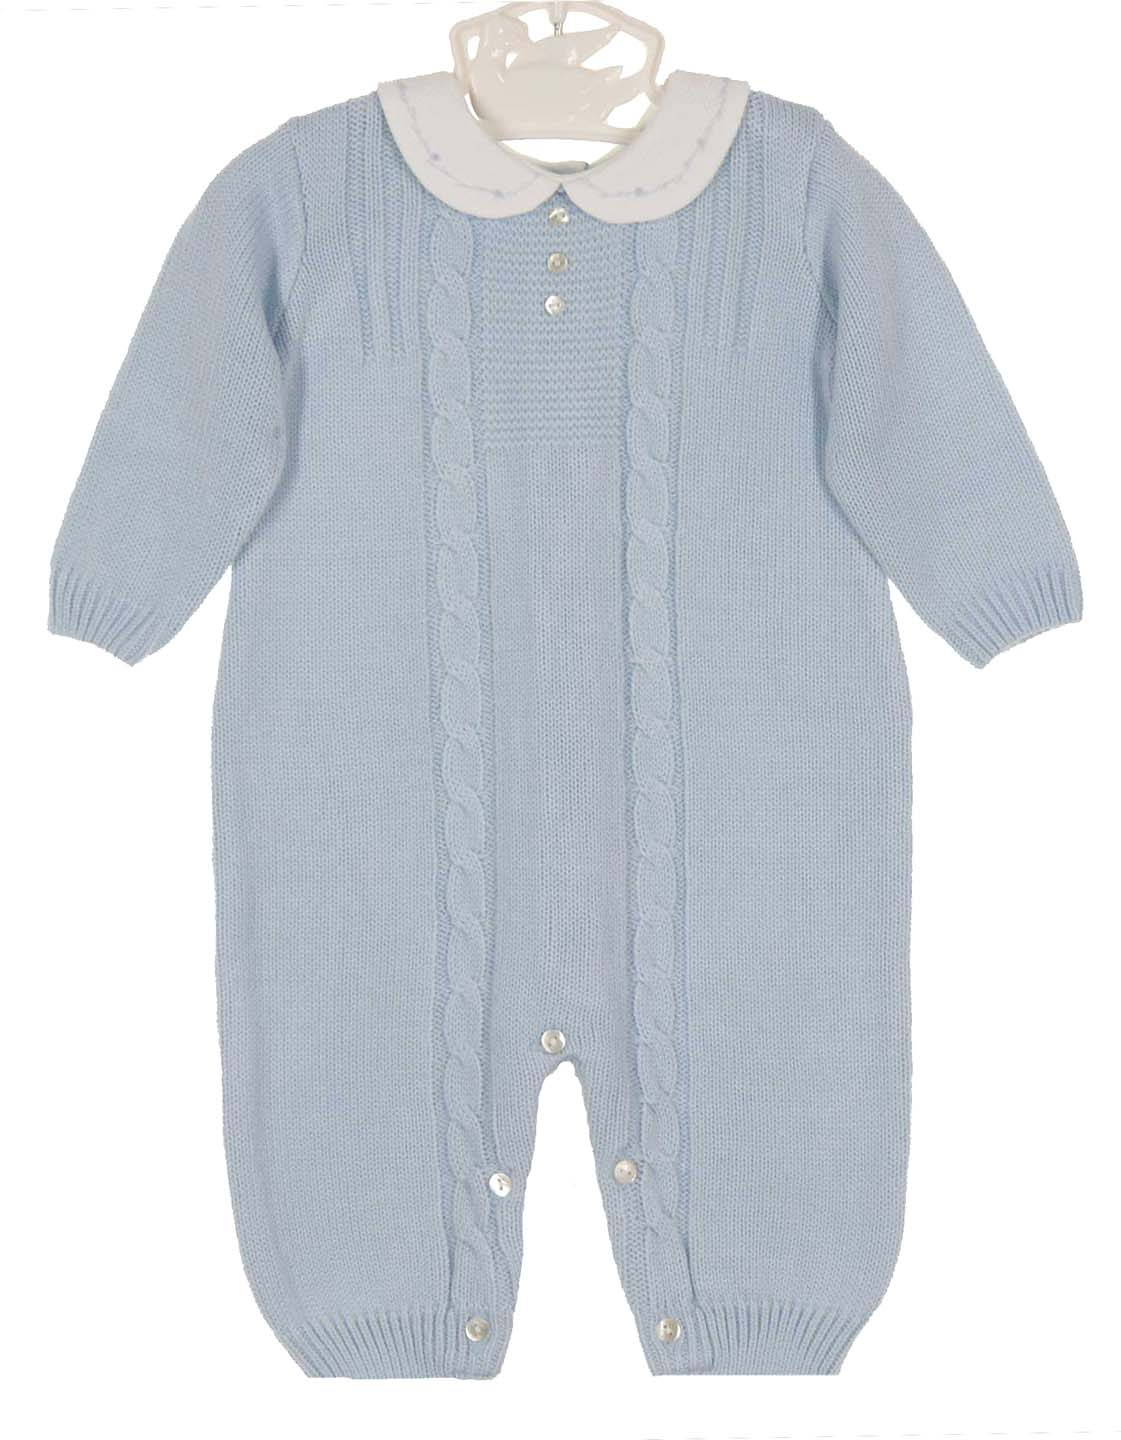 d8a79ccf3 NEW Sarah Louise Blue Knit Romper with Embroidered White Pique Collar